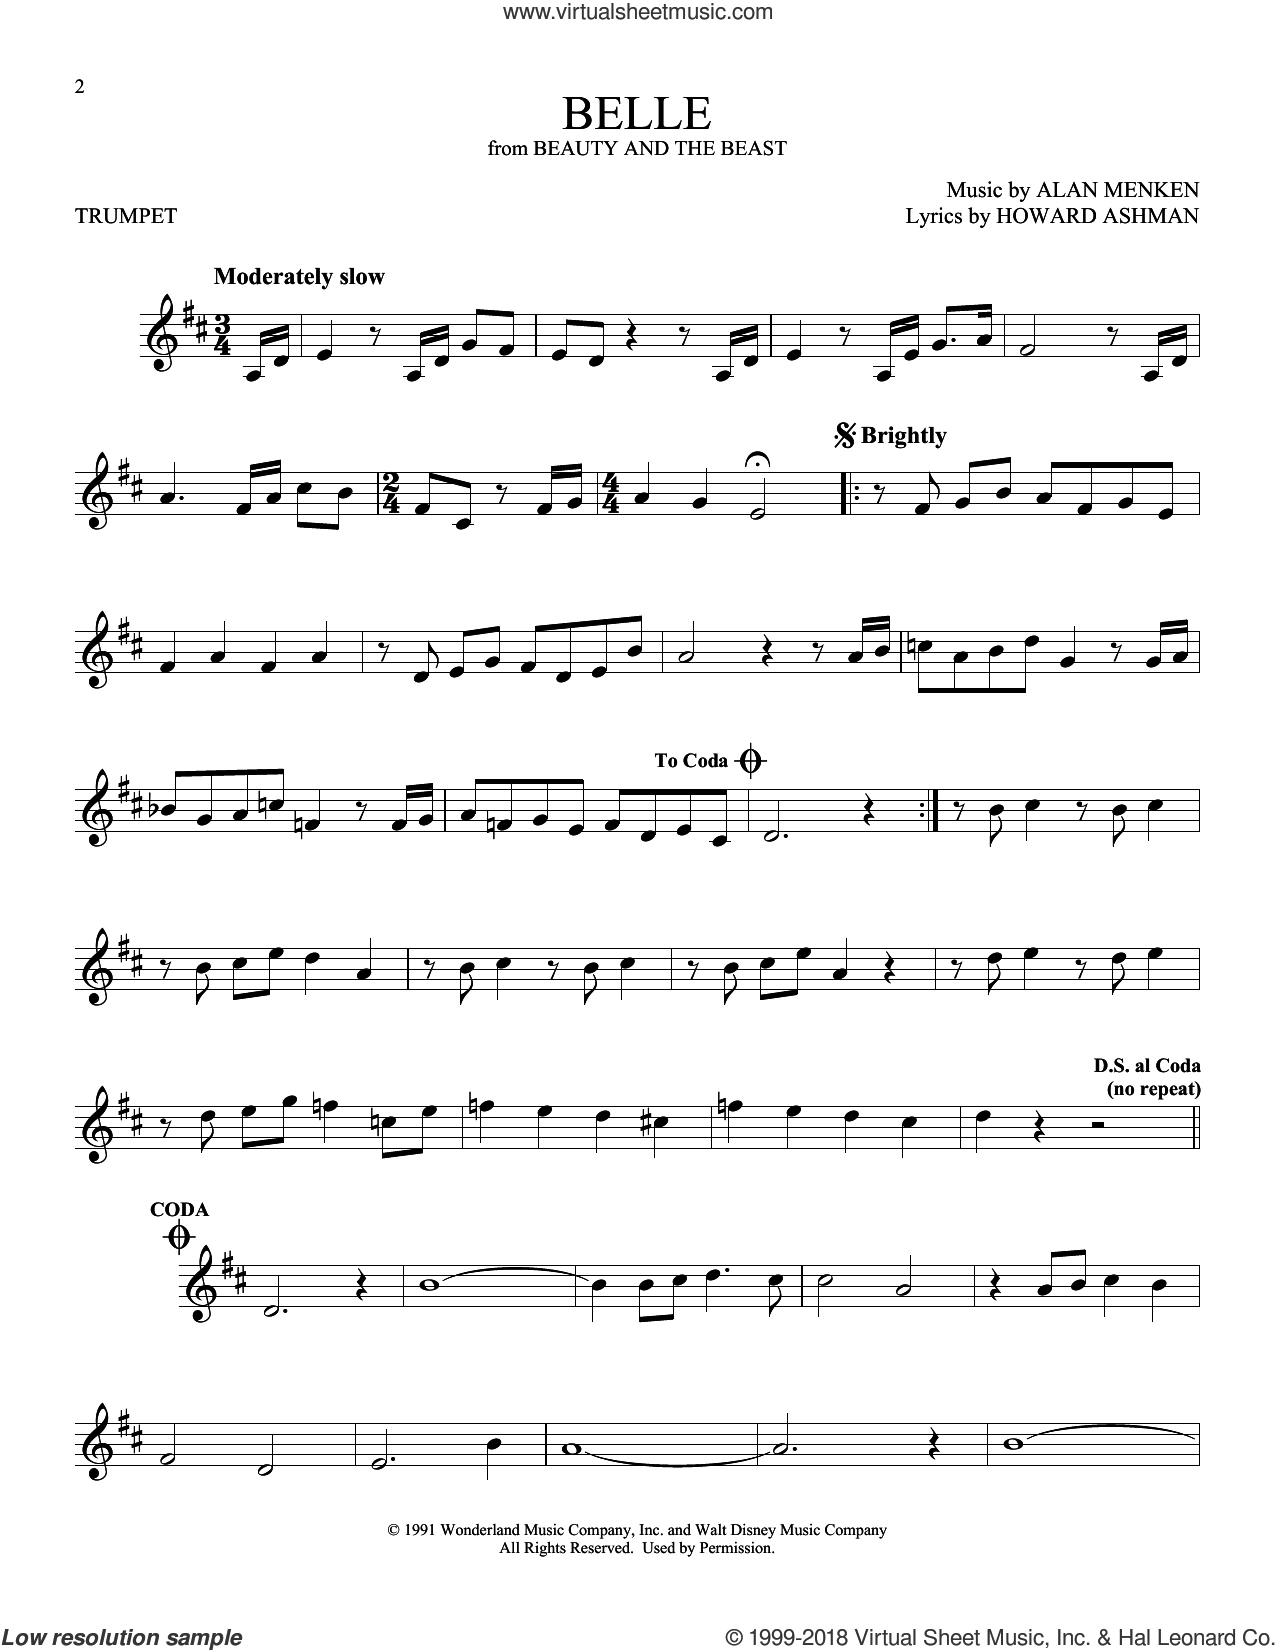 Belle (from Beauty And The Beast) sheet music for trumpet solo by Alan Menken and Howard Ashman, intermediate skill level